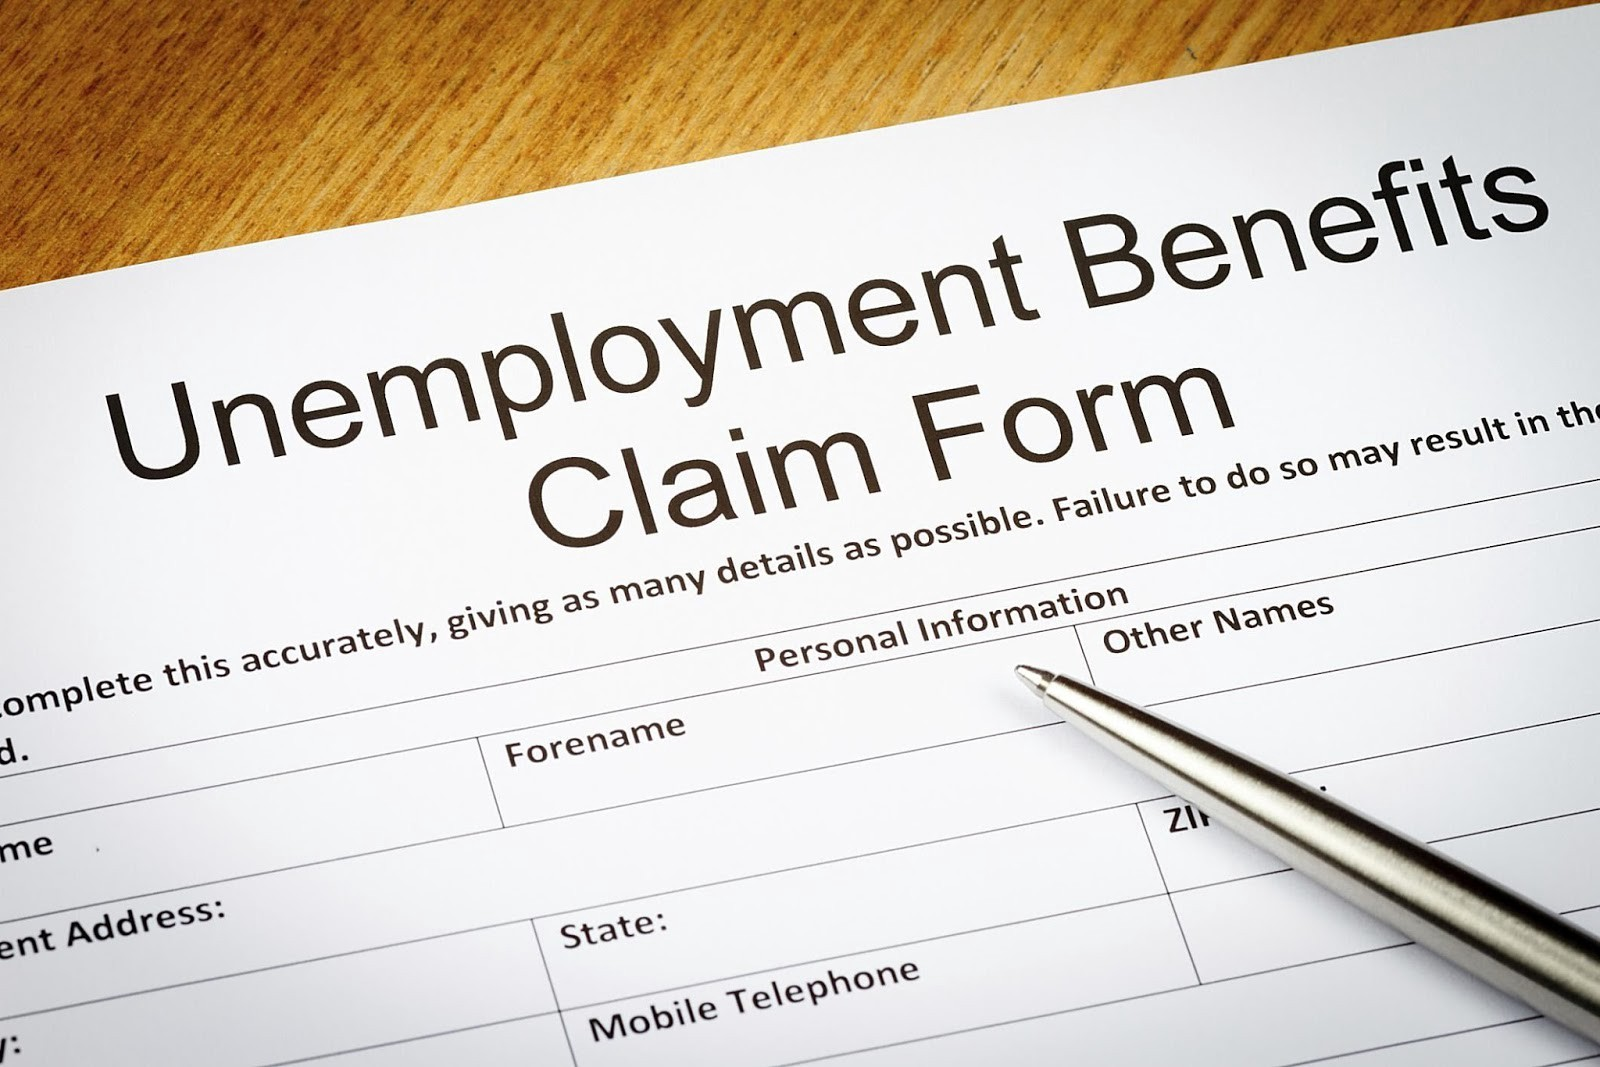 2018 Futa Tax Rate Irs Form 940 And Unemployment Benefits